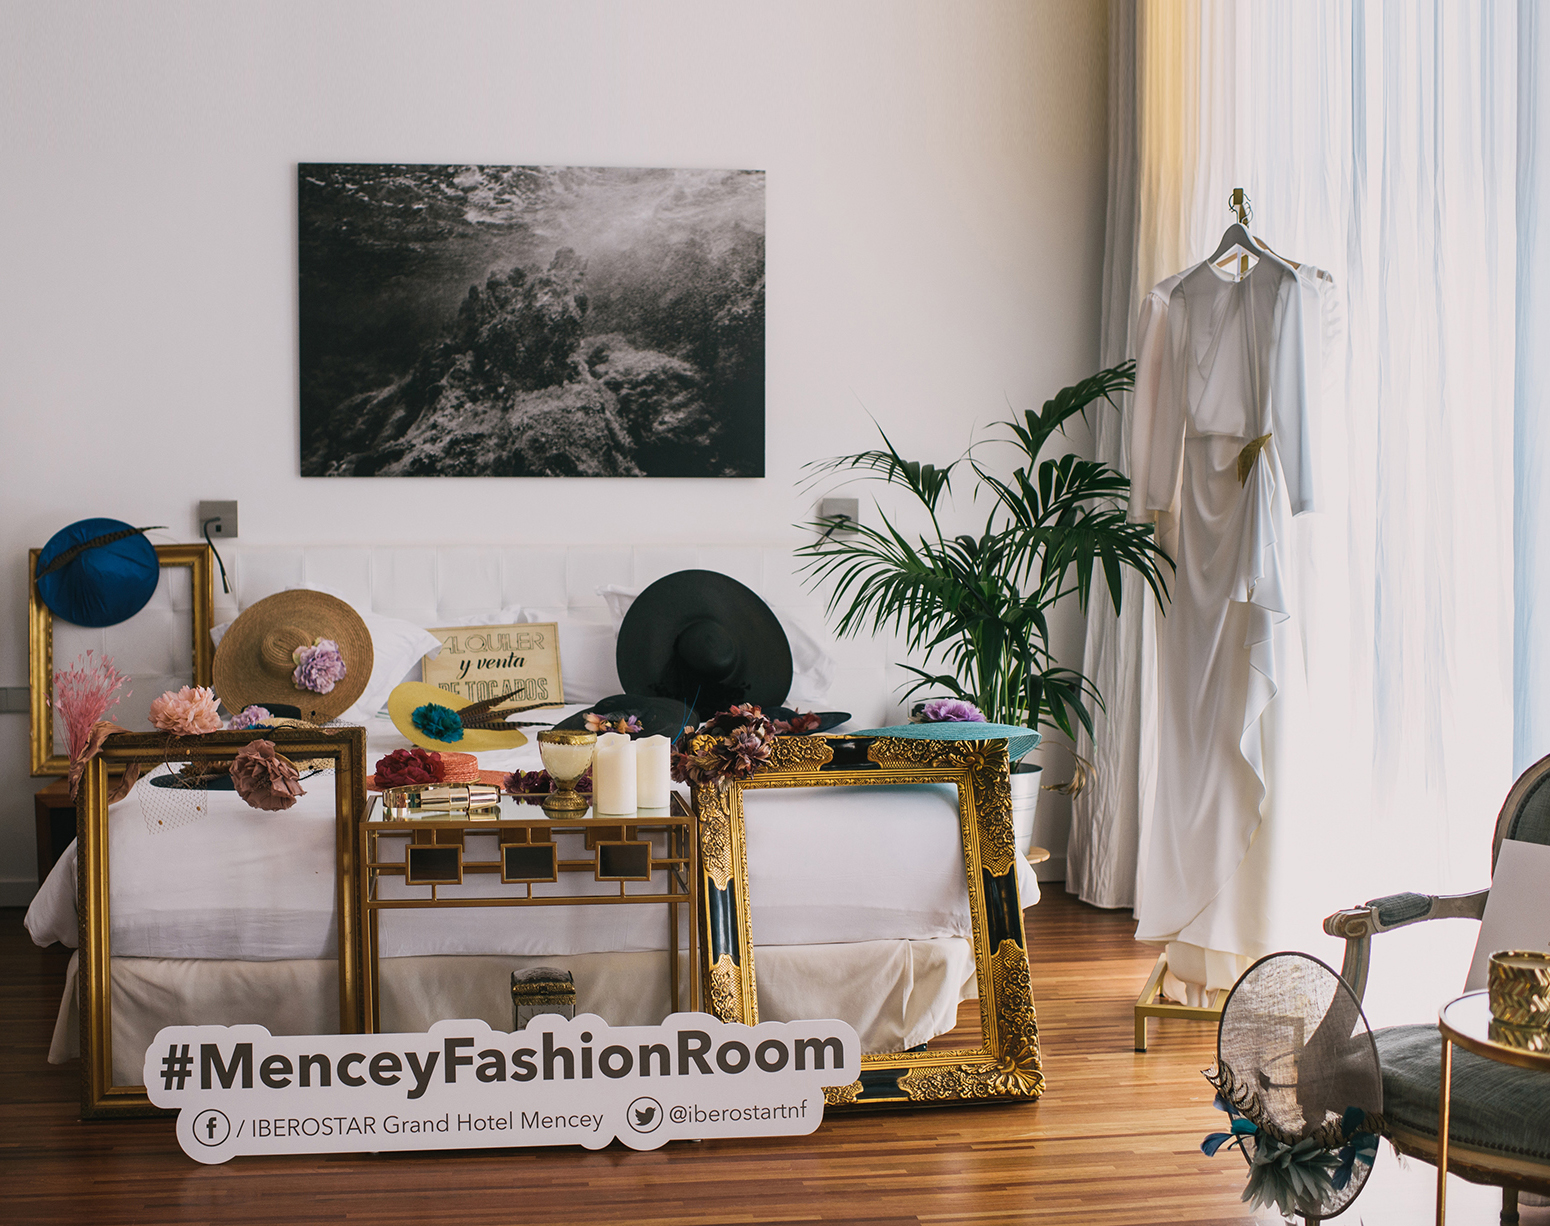 mencey-fashion-room-17-la-exclusividad-un-ao-ms-en-la-nueva-edicin-de-mfr17